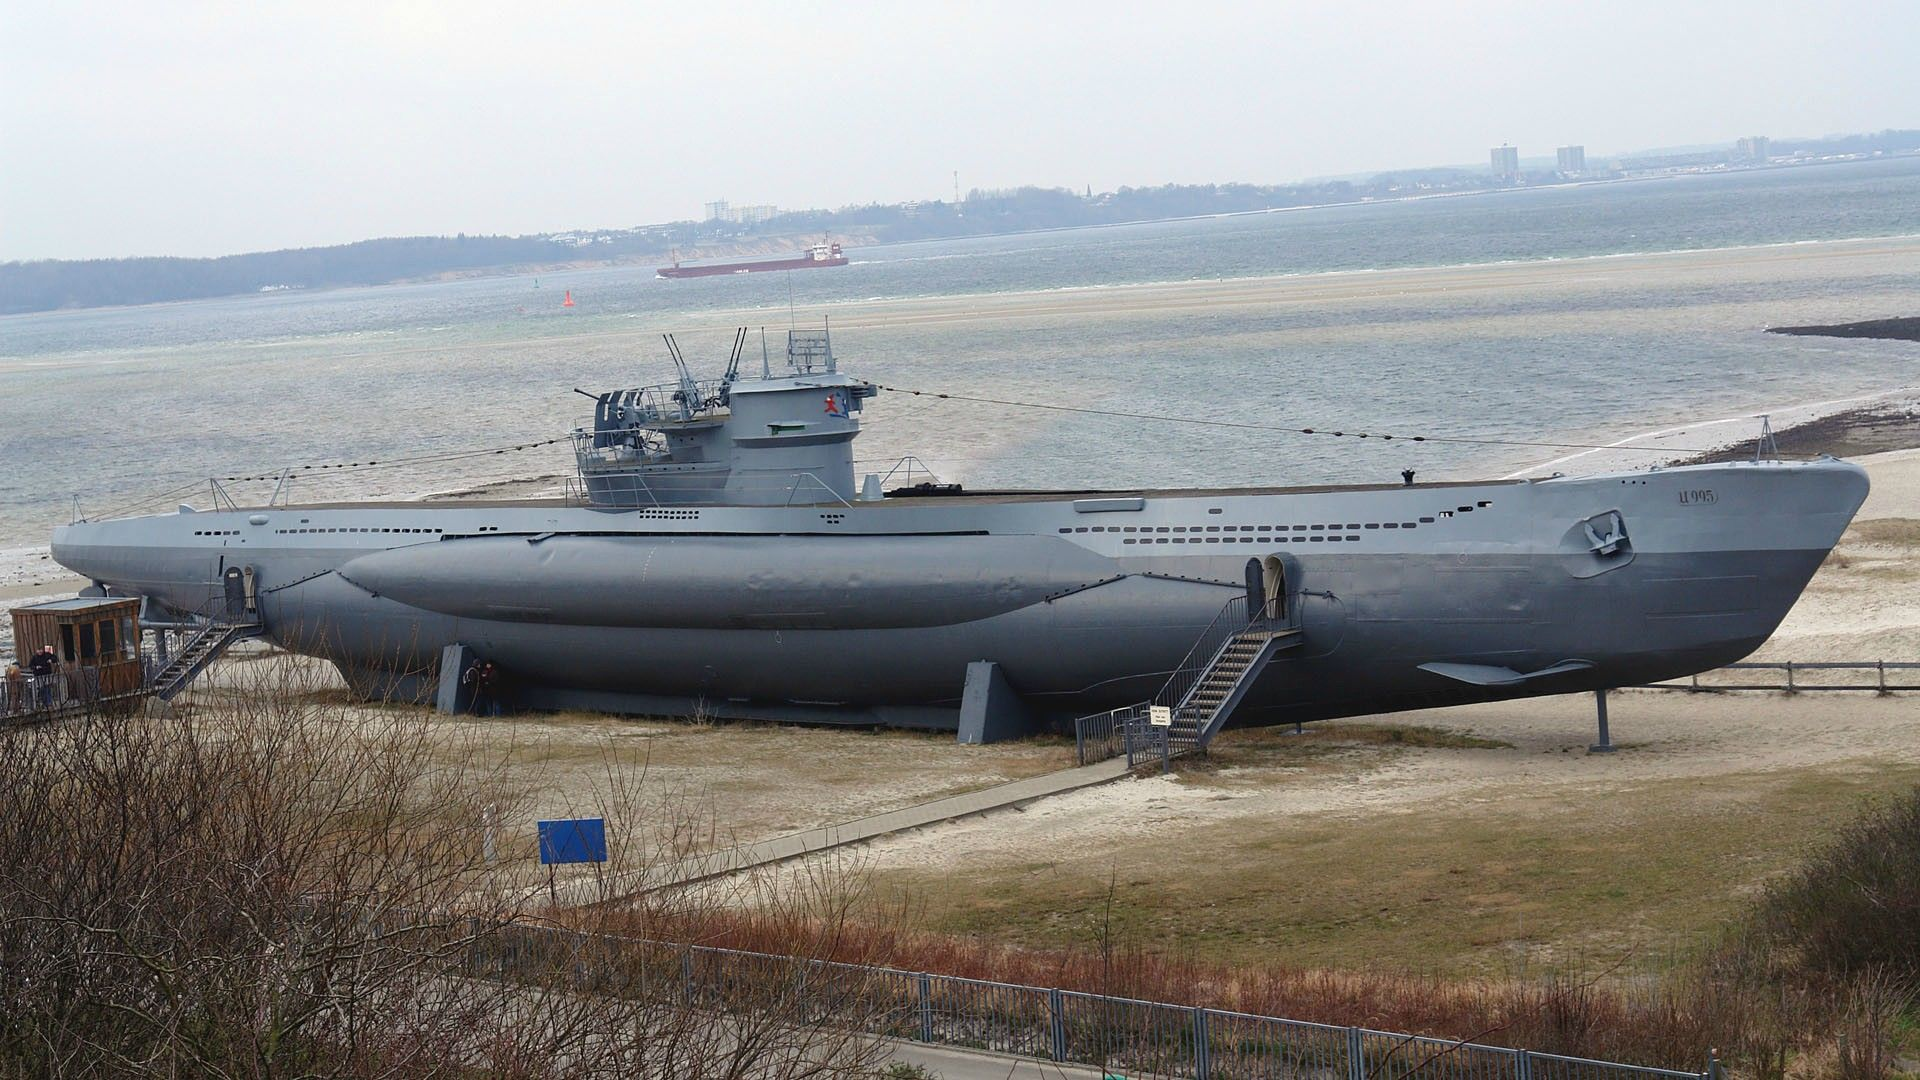 U 995 Type Viic Submarine Now A Museum At Laboe Germany